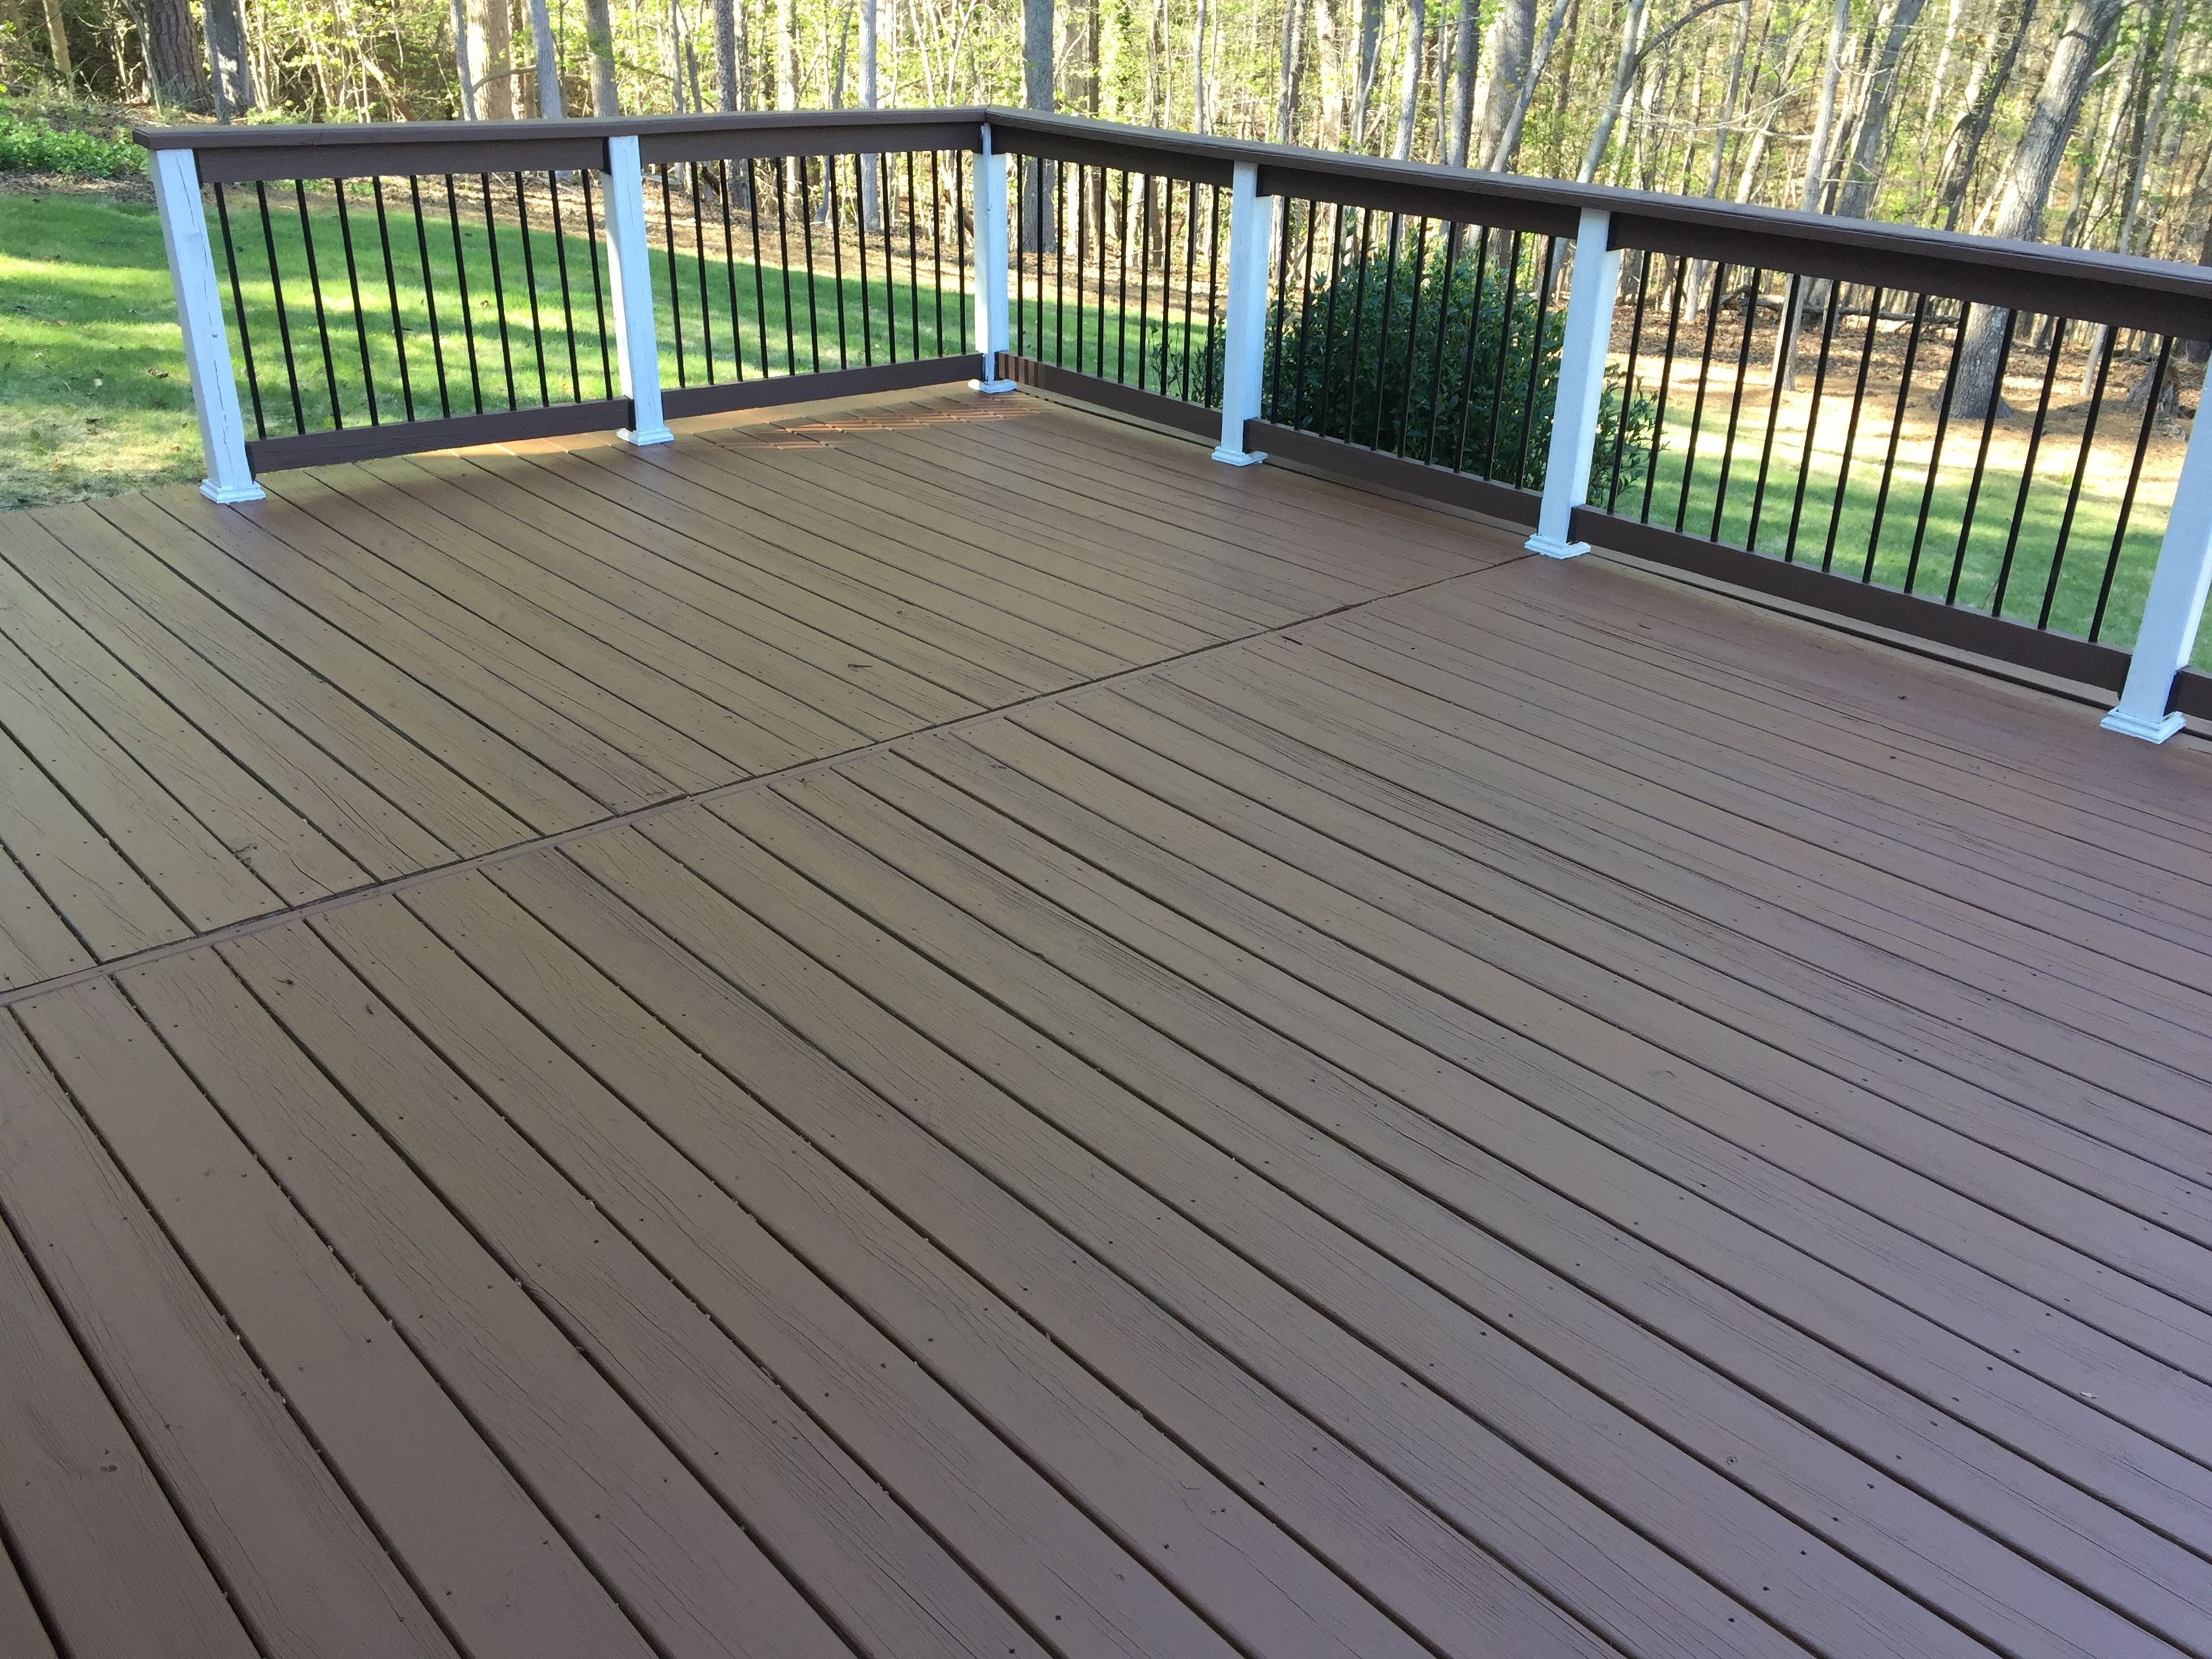 Best 20 behr deck paint ideas on pinterest deck colors restore did the deck today and love the double shade deck paint colors behr chocolate on baanklon Choice Image